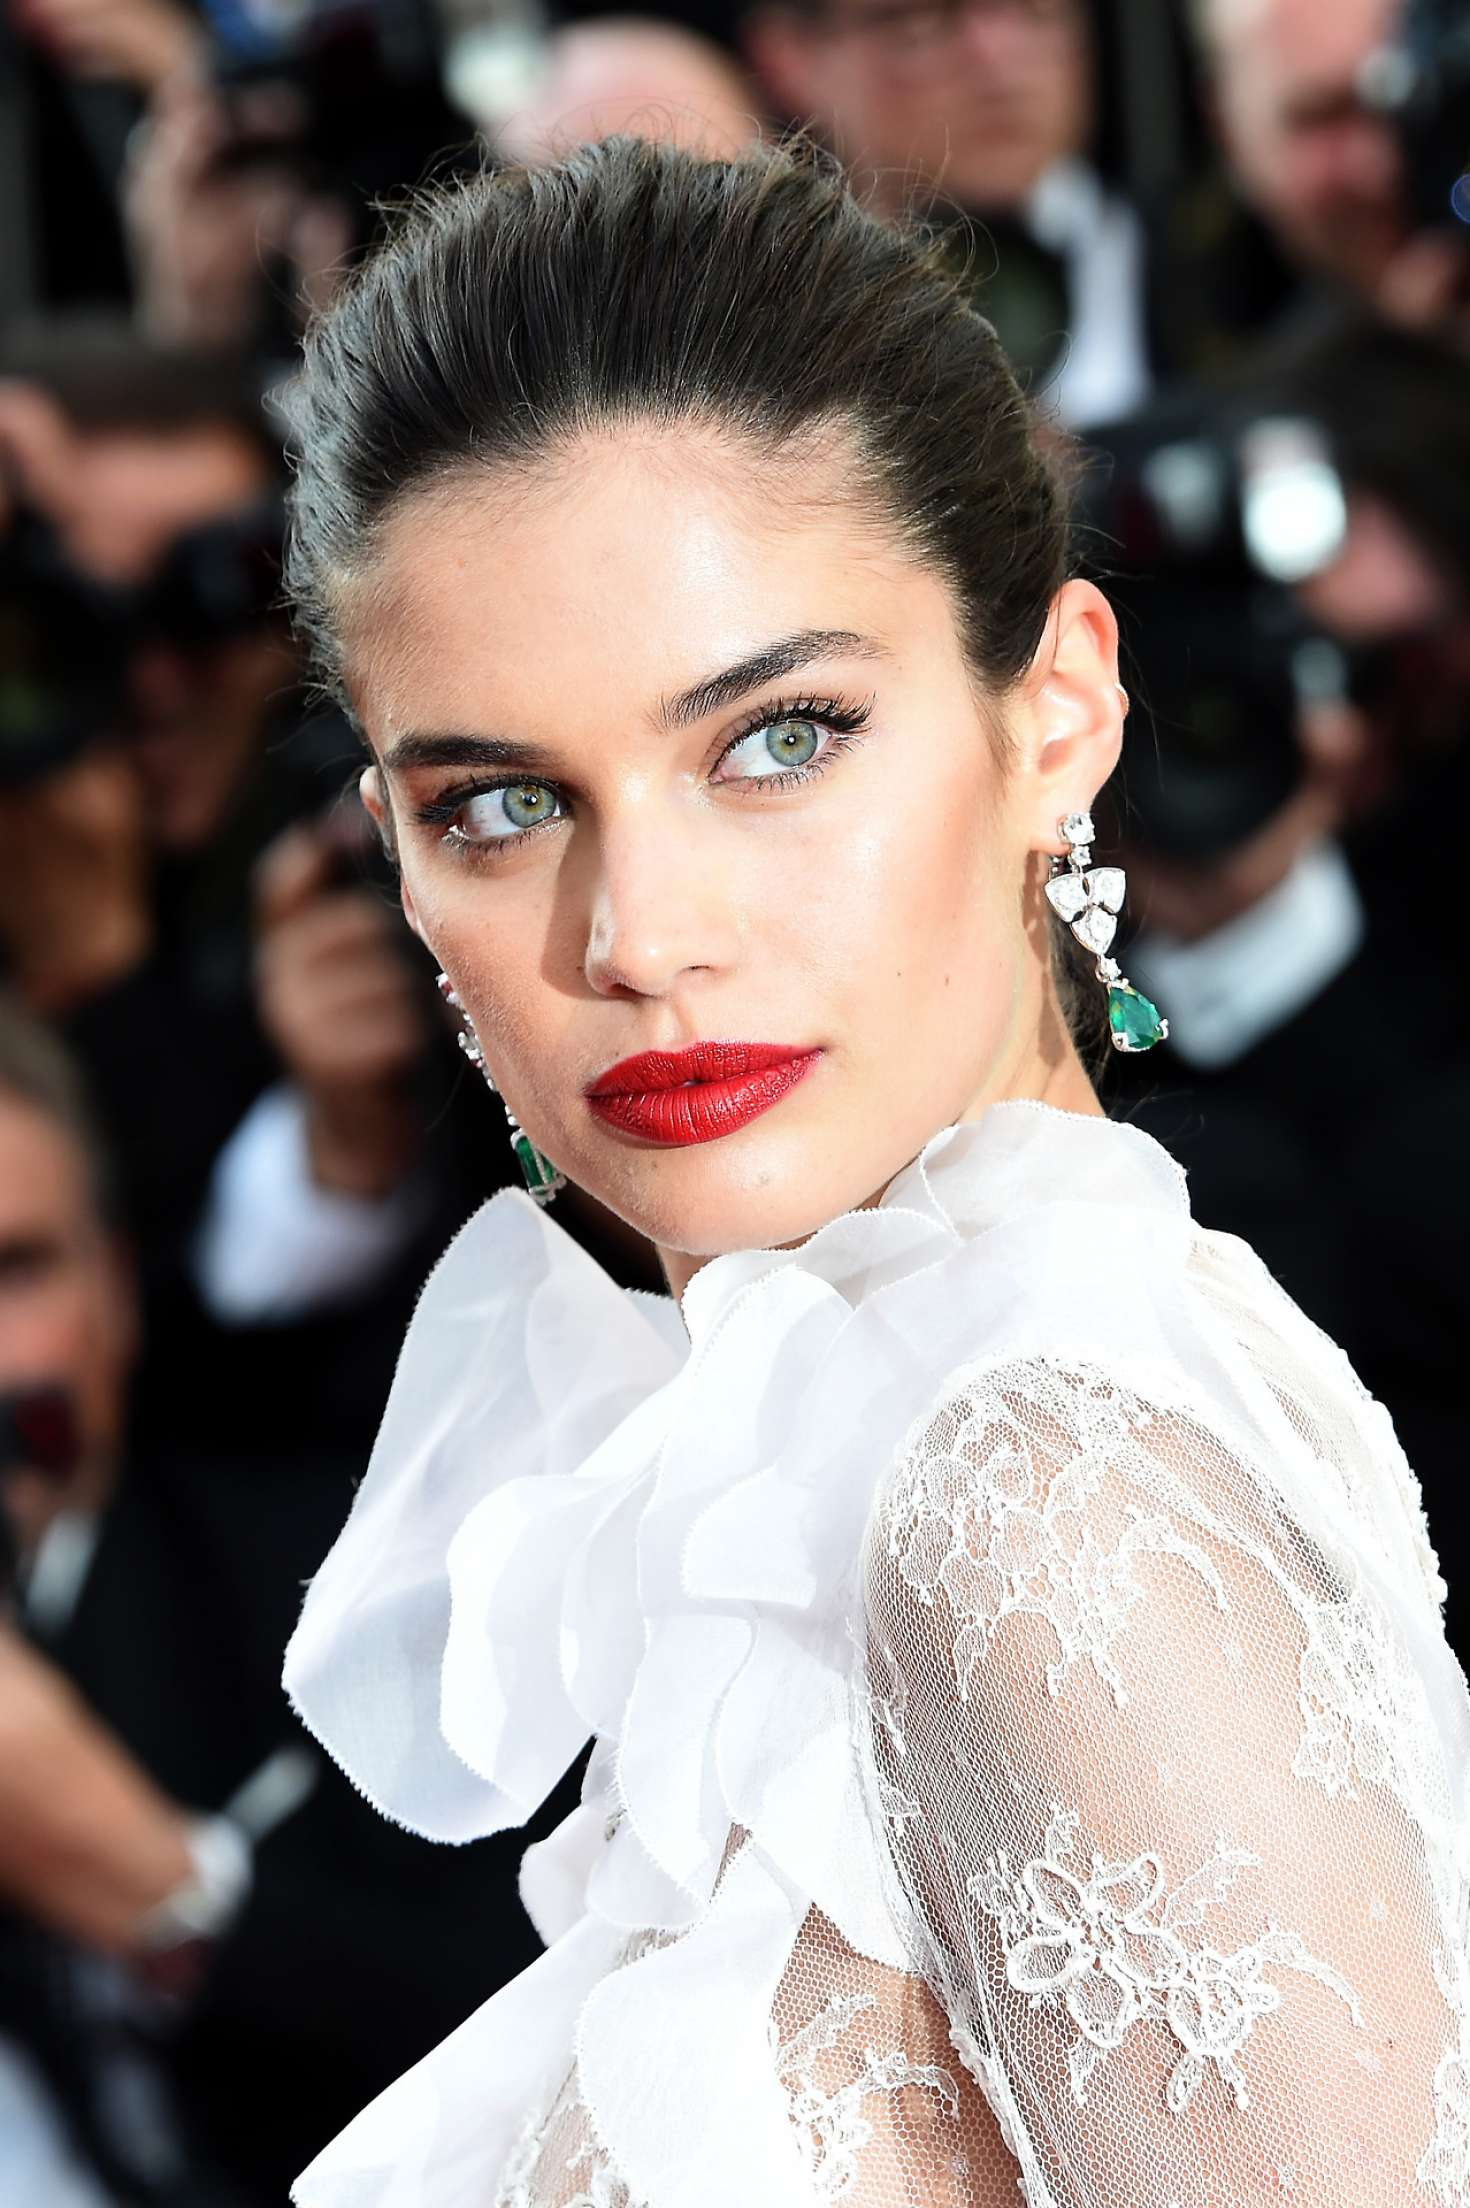 Sara Sampaio – 'The Killing of a Sacred Deer' Premiere at 70th Cannes Film Festival   Sara-Sampaio:-The-Killing-of-a-Sacred-Deer-Premiere-at-70th-Cannes-Film-Festival--05